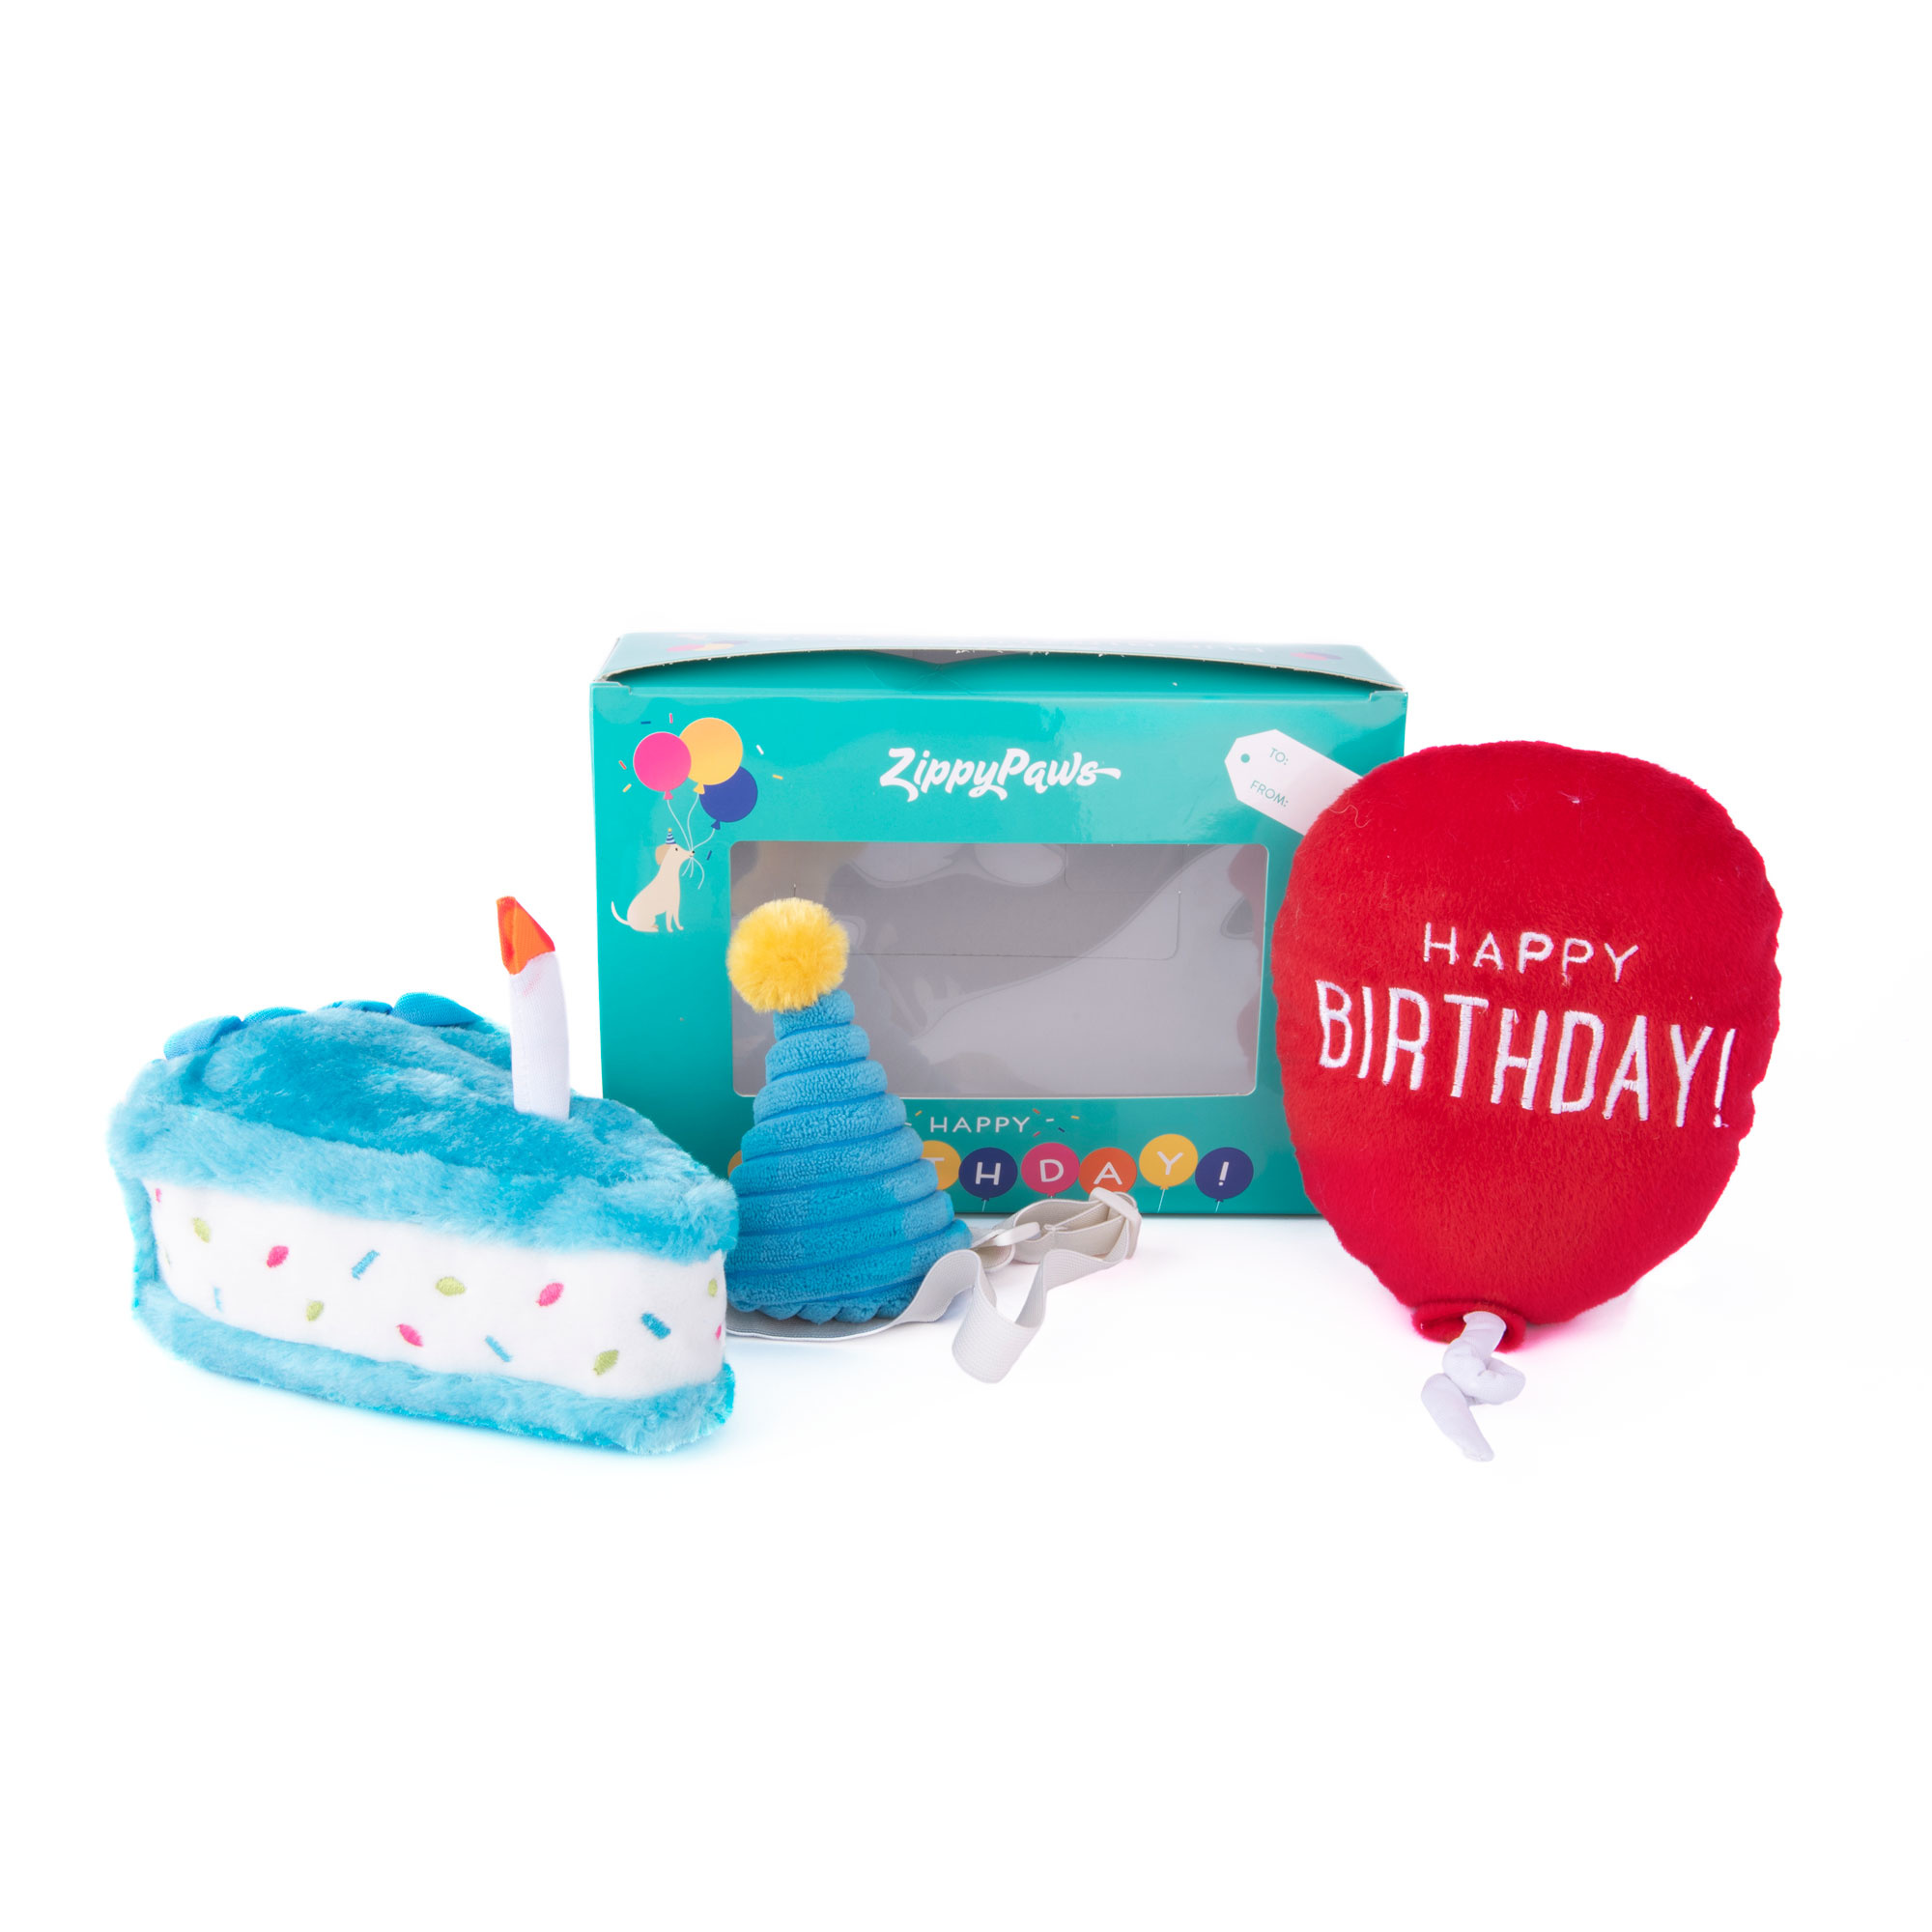 Zippy ZippyPaws Burrow - Birthday Box